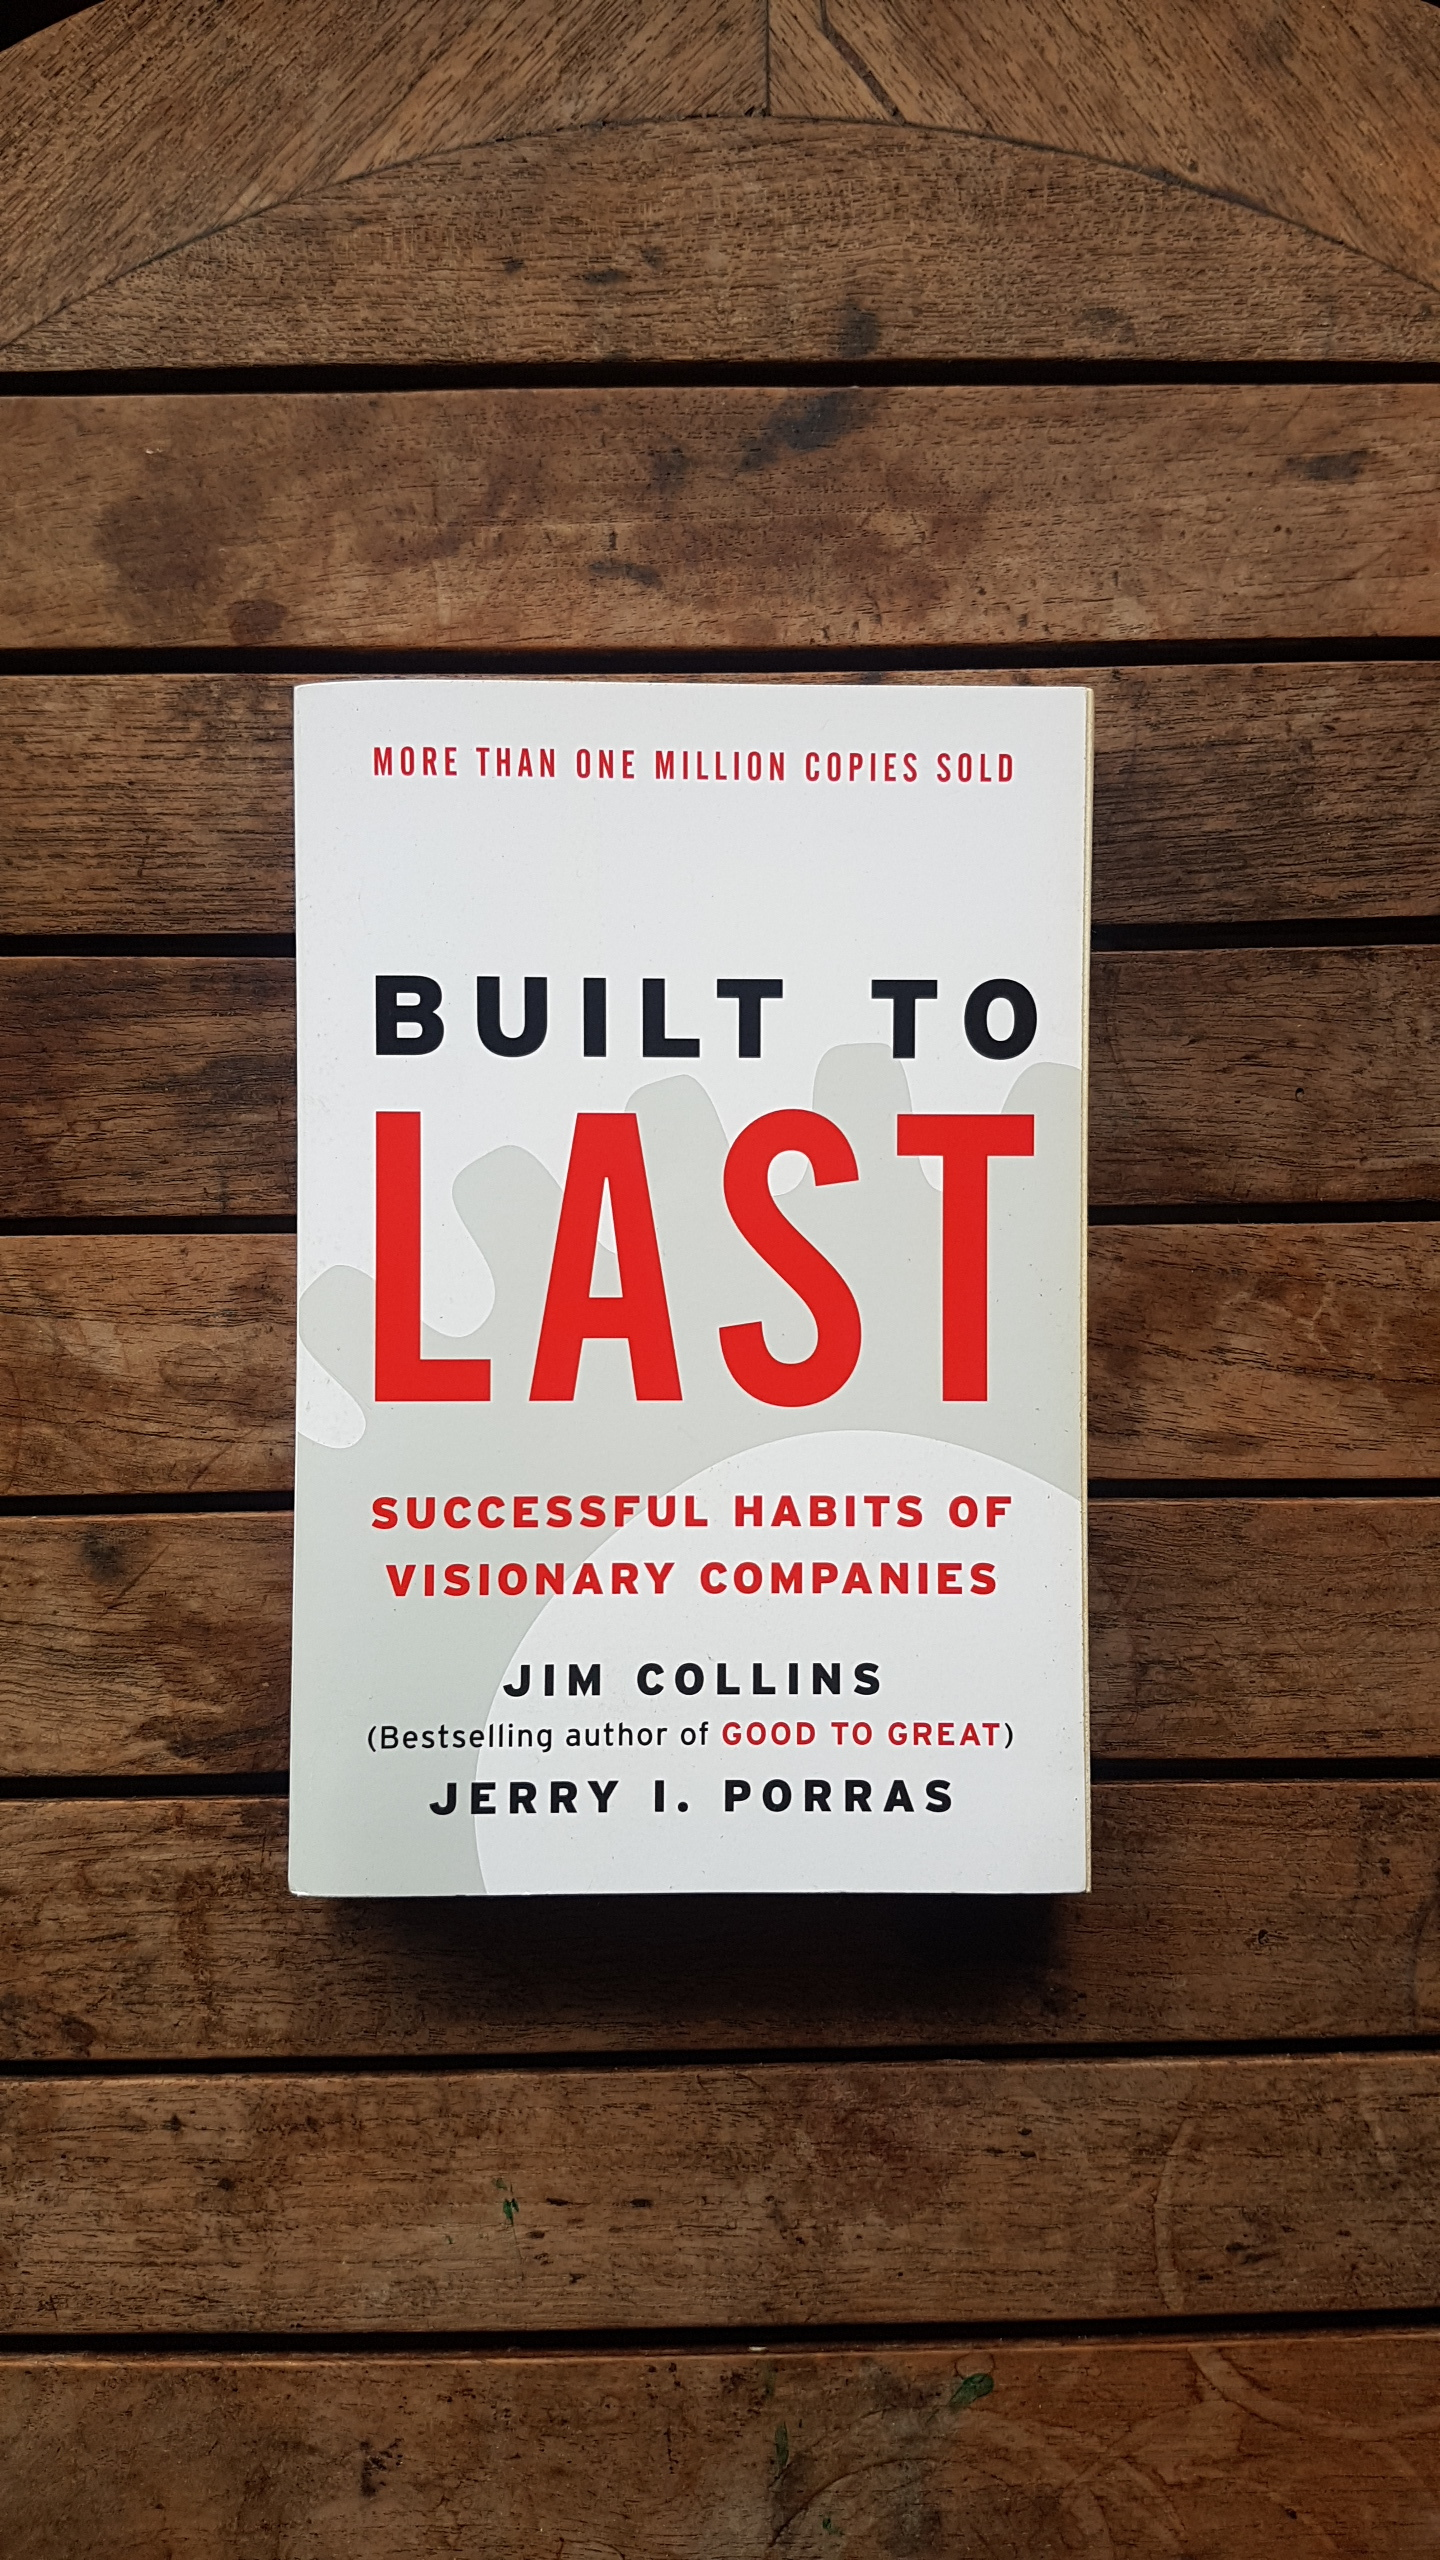 Built to Last: Successful Habits of Visionary Companies (Harper Business Essentials)   by Jim Collins